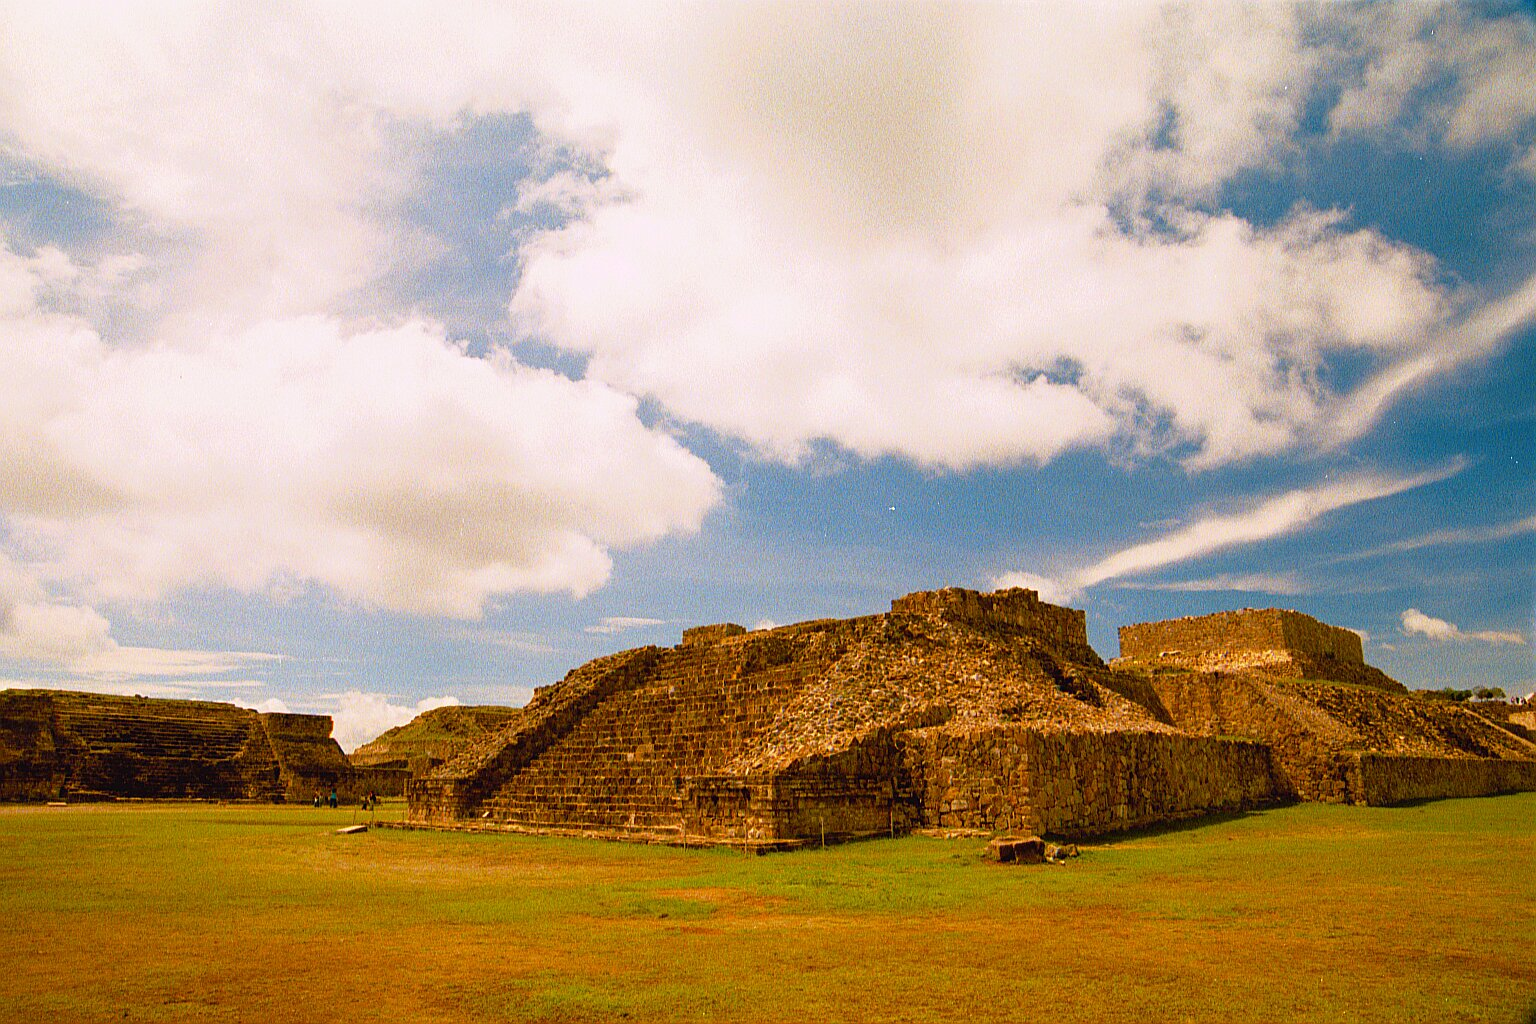 Monte Alban Today